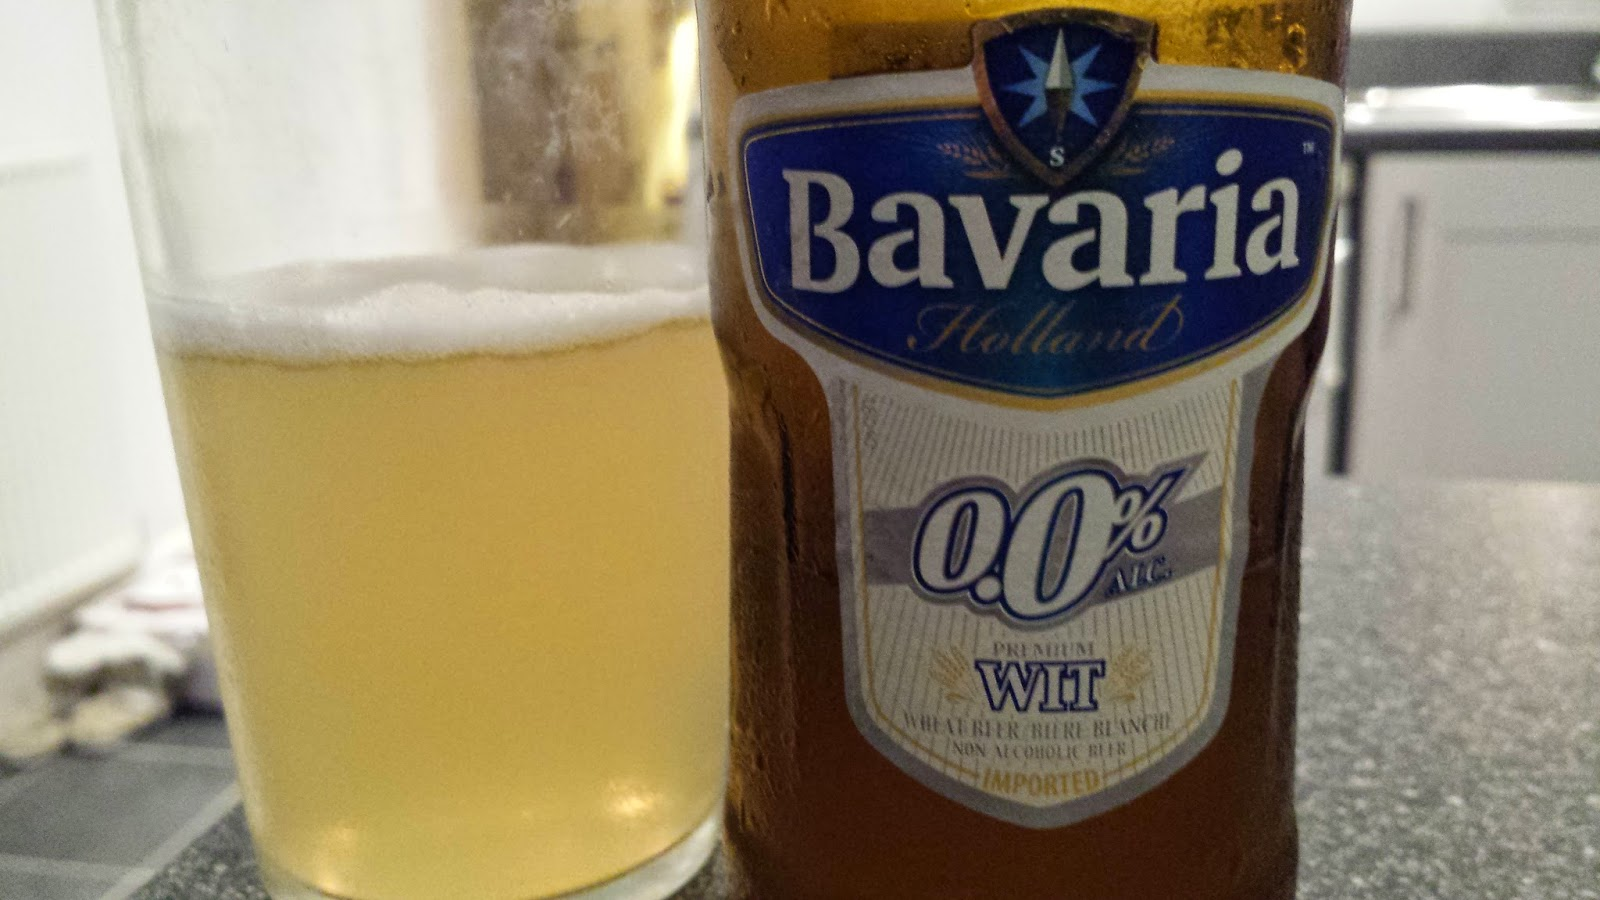 Bavaria Wit Beer 0.0%